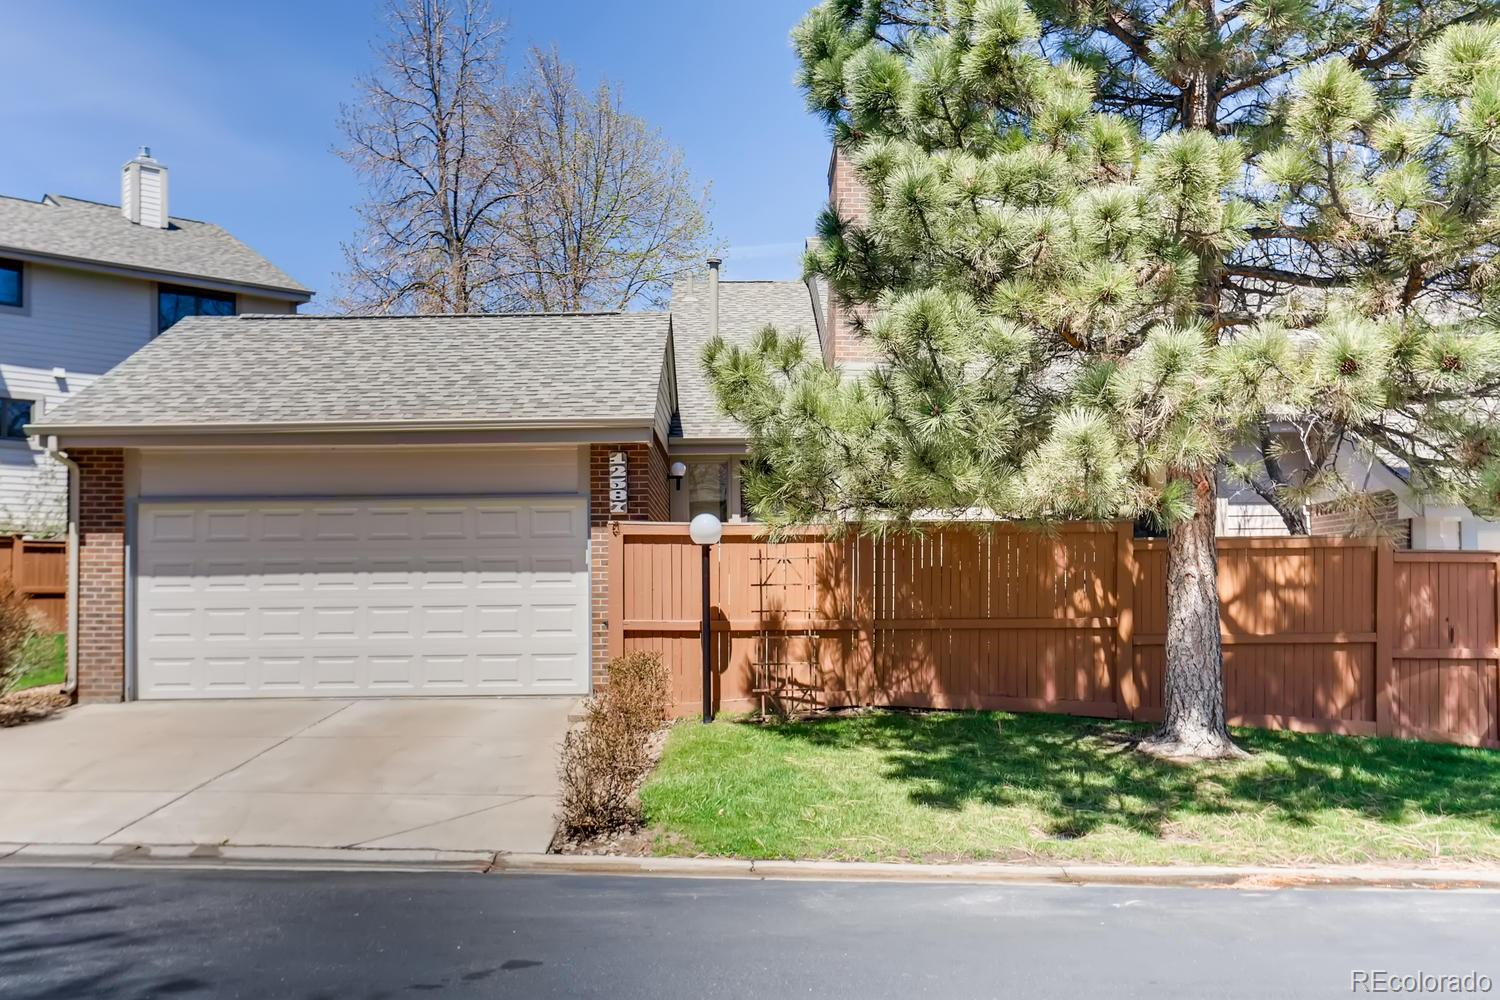 12587 W 1st Place #12, Lakewood, CO 80228 - Lakewood, CO real estate listing